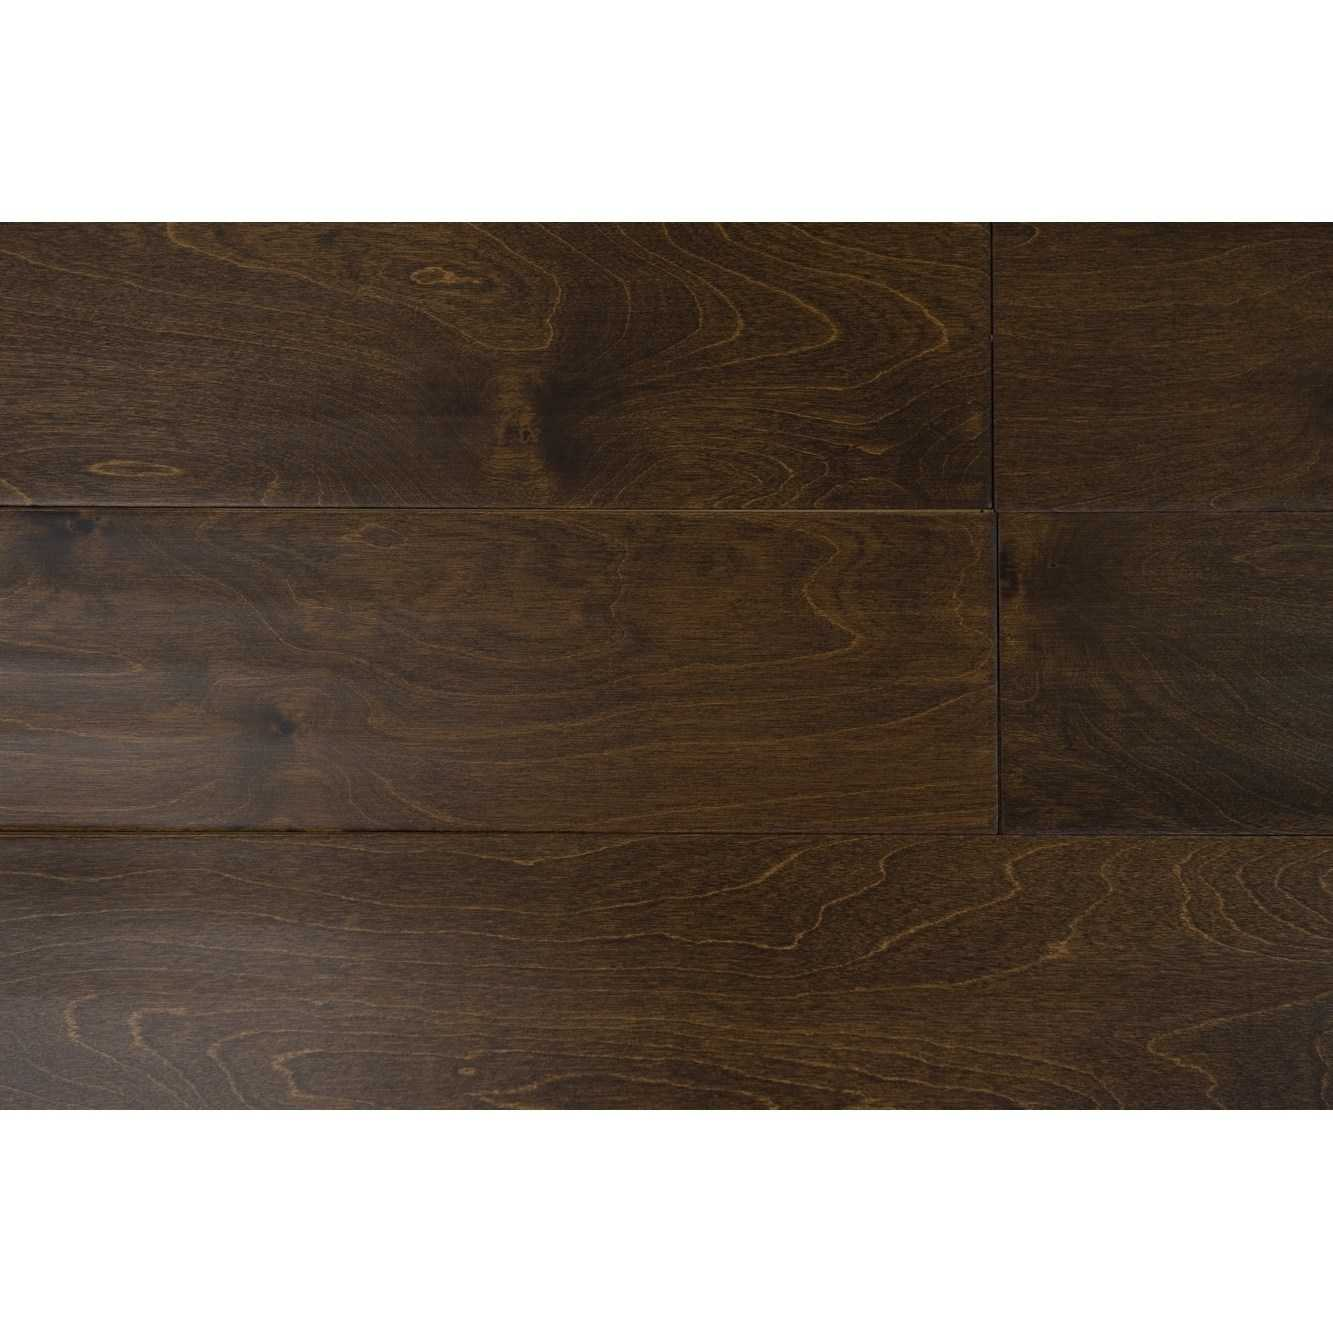 Boon Collection Engineered Hardwood in Coffee - 3/8' x 5' (32.81sqft/case)